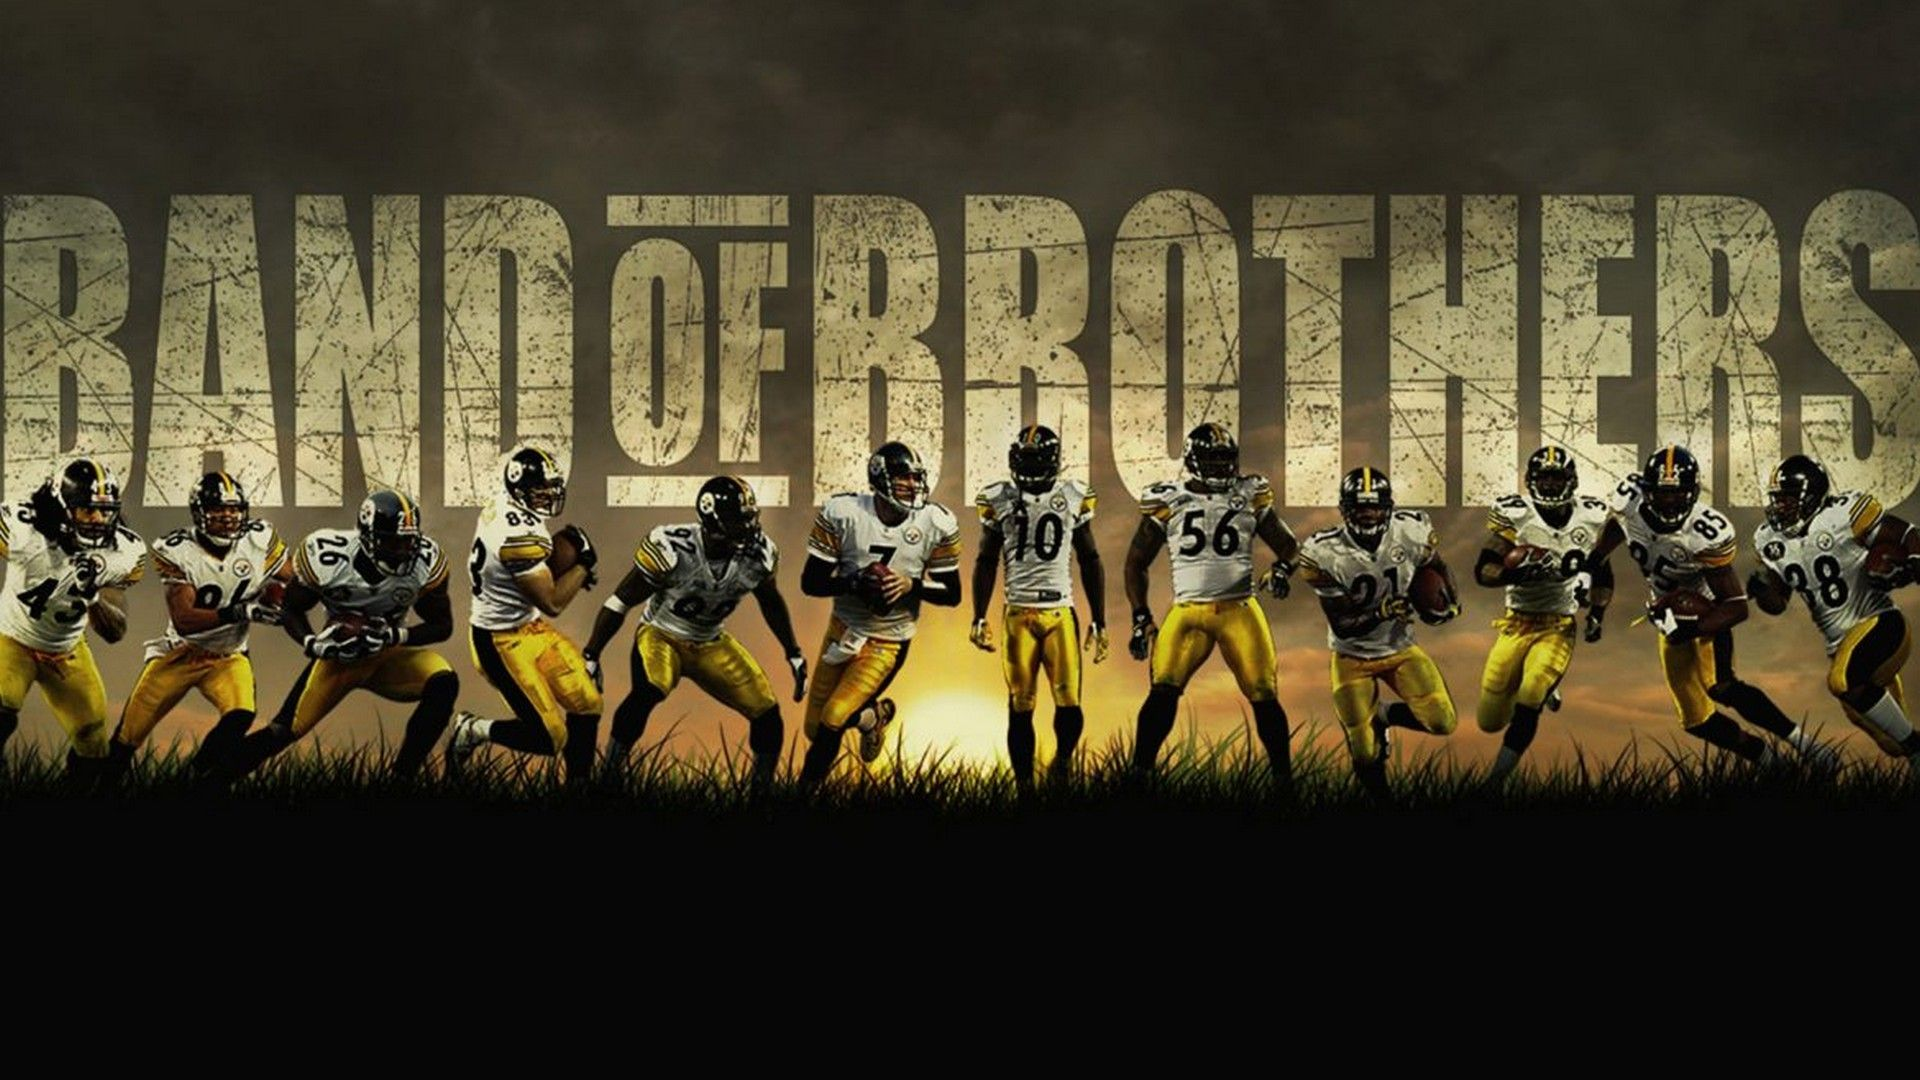 Pittsburgh Steelers Football For PC Wallpaper Pittsburgh